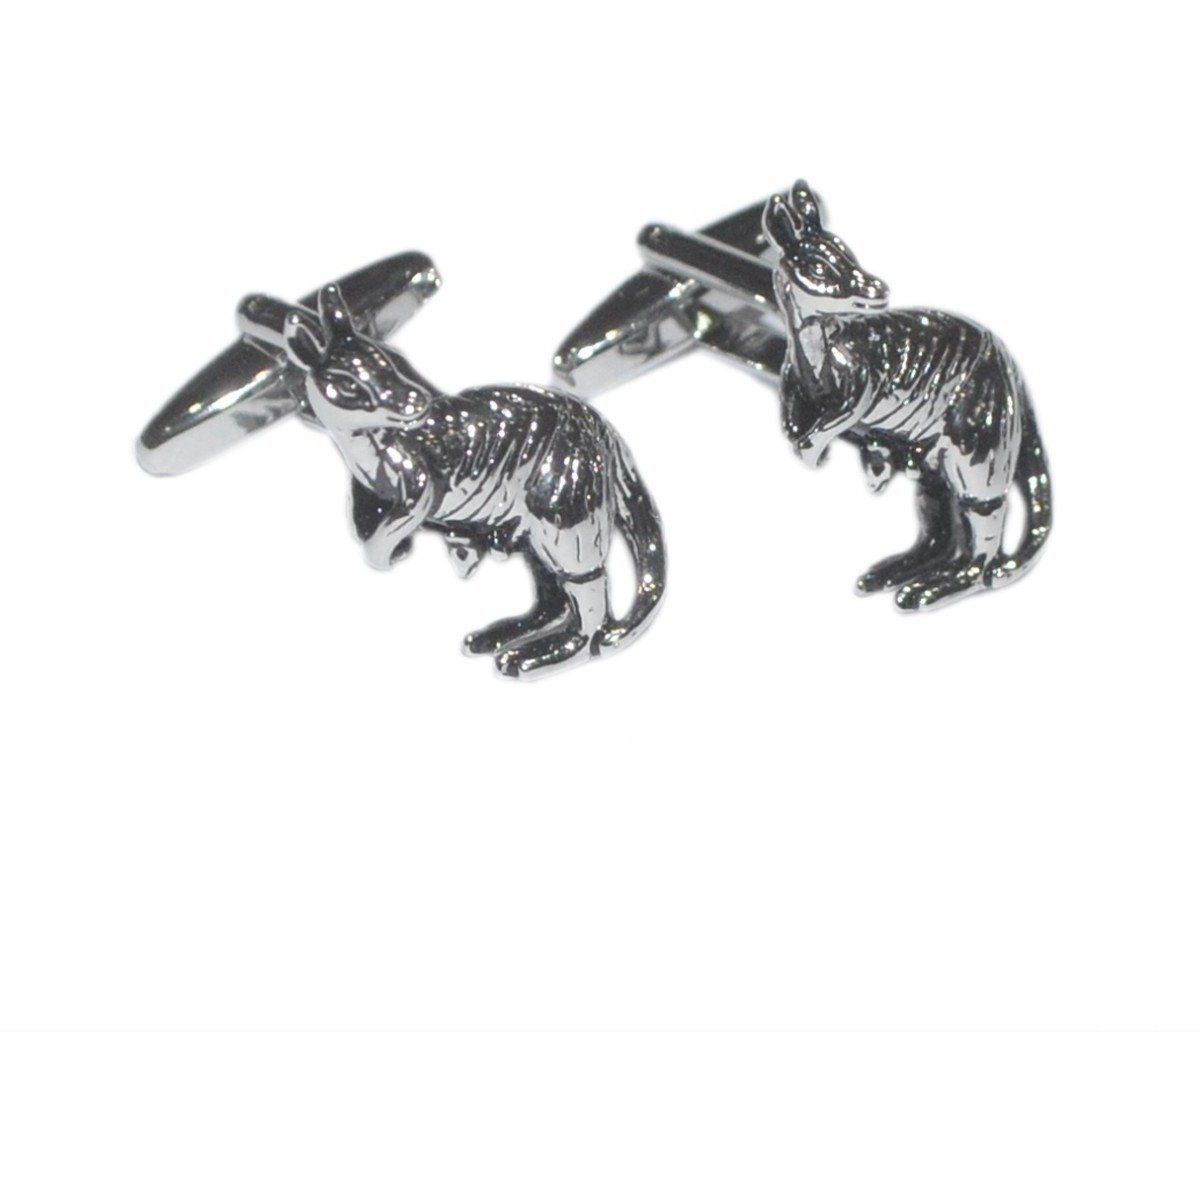 Kangaroo and Joey cufflinks Novelty Cufflinks Clinks Australia Kangaroo and Joey cufflinks